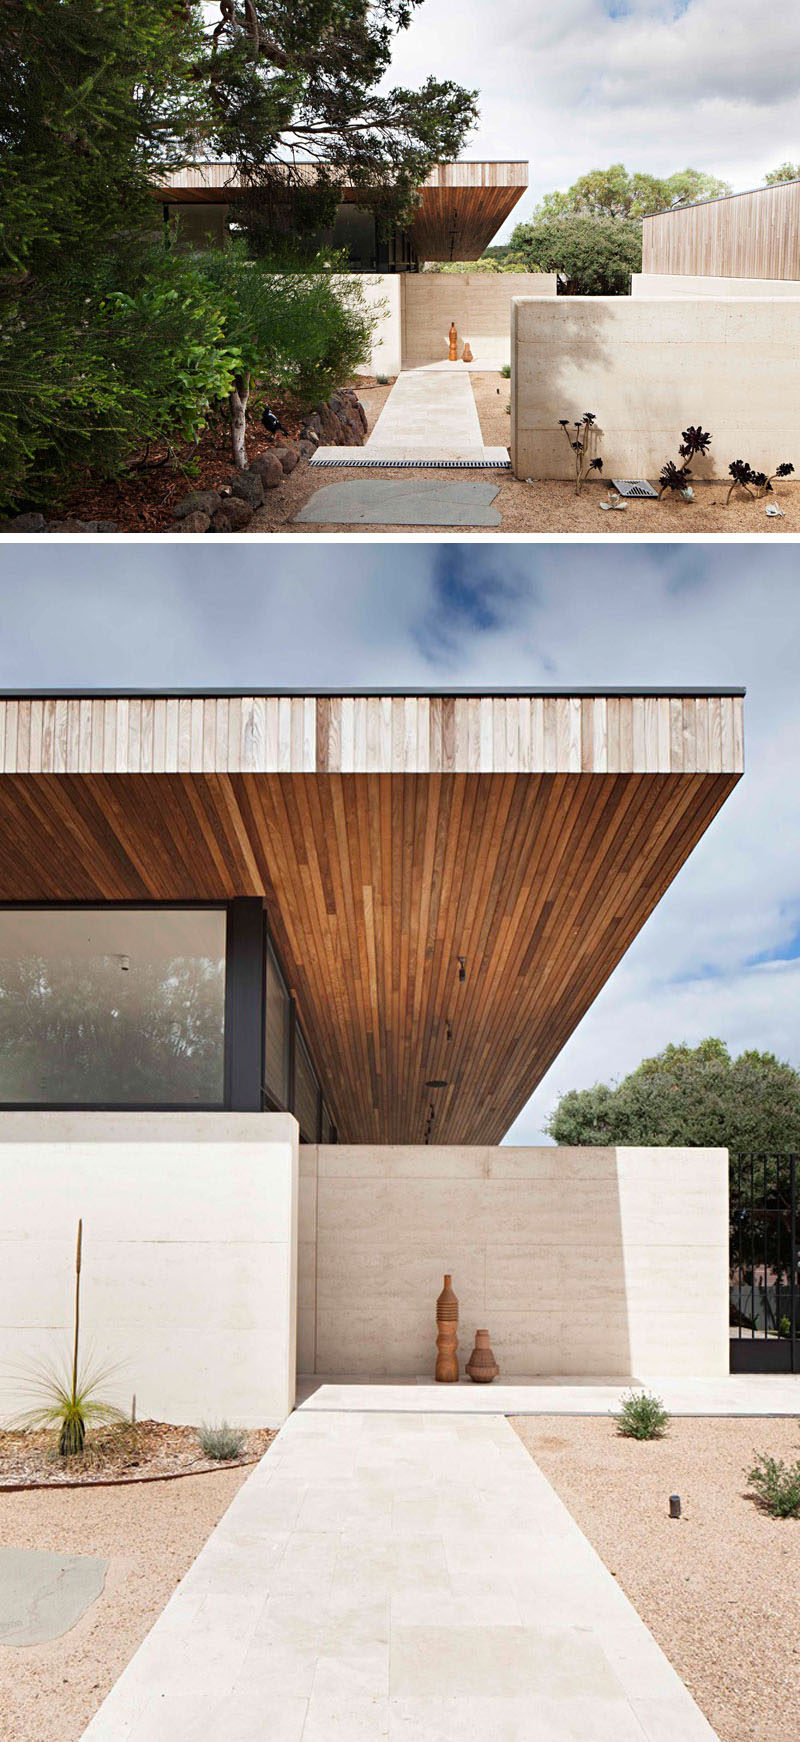 Captivating Robson Rak Architects And Interior Designers Have Recently Completed The  Layer House, A Home In Victoria, Australia, Built Using Rammed Earth And  Timber.